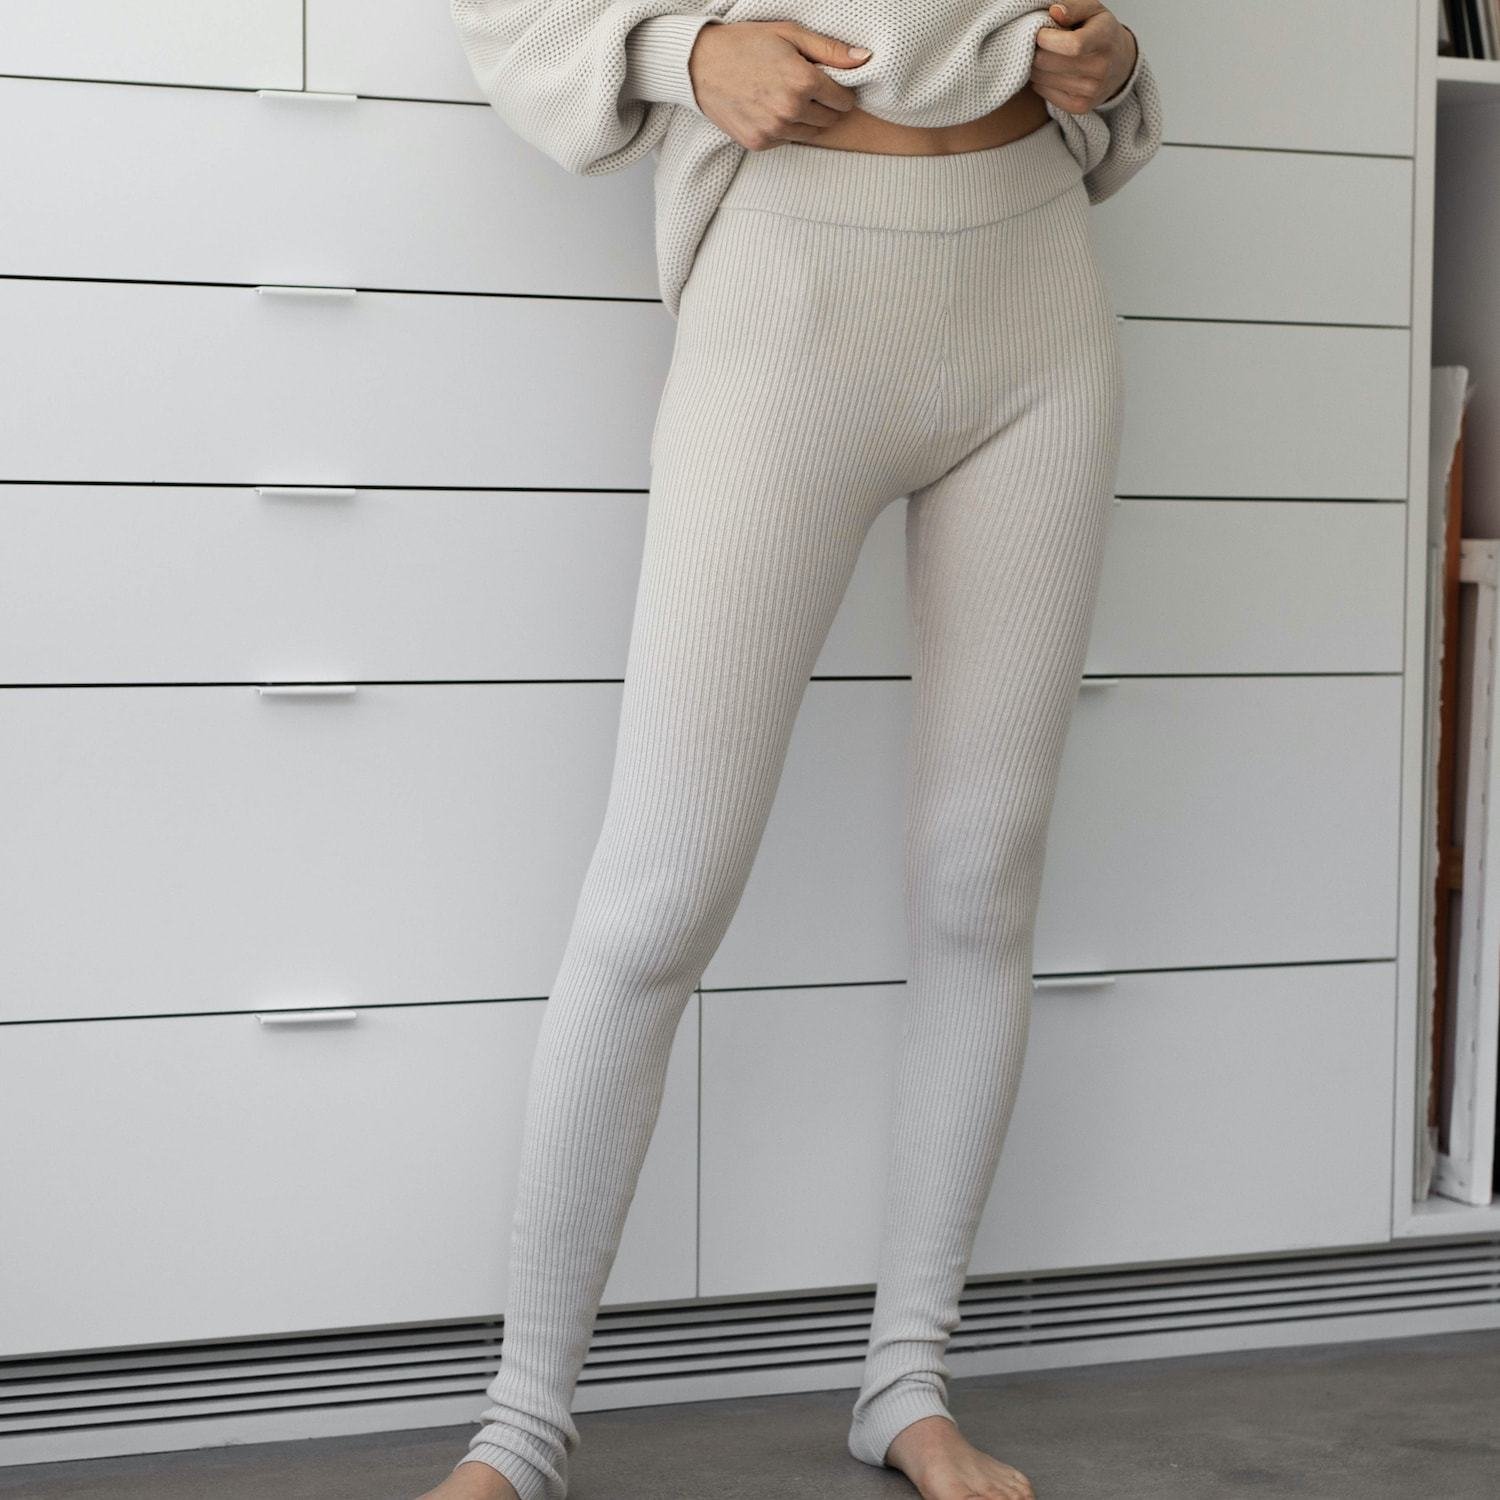 Lunya Sleepwear Cozy Cotton Silk Legging - #Canvas